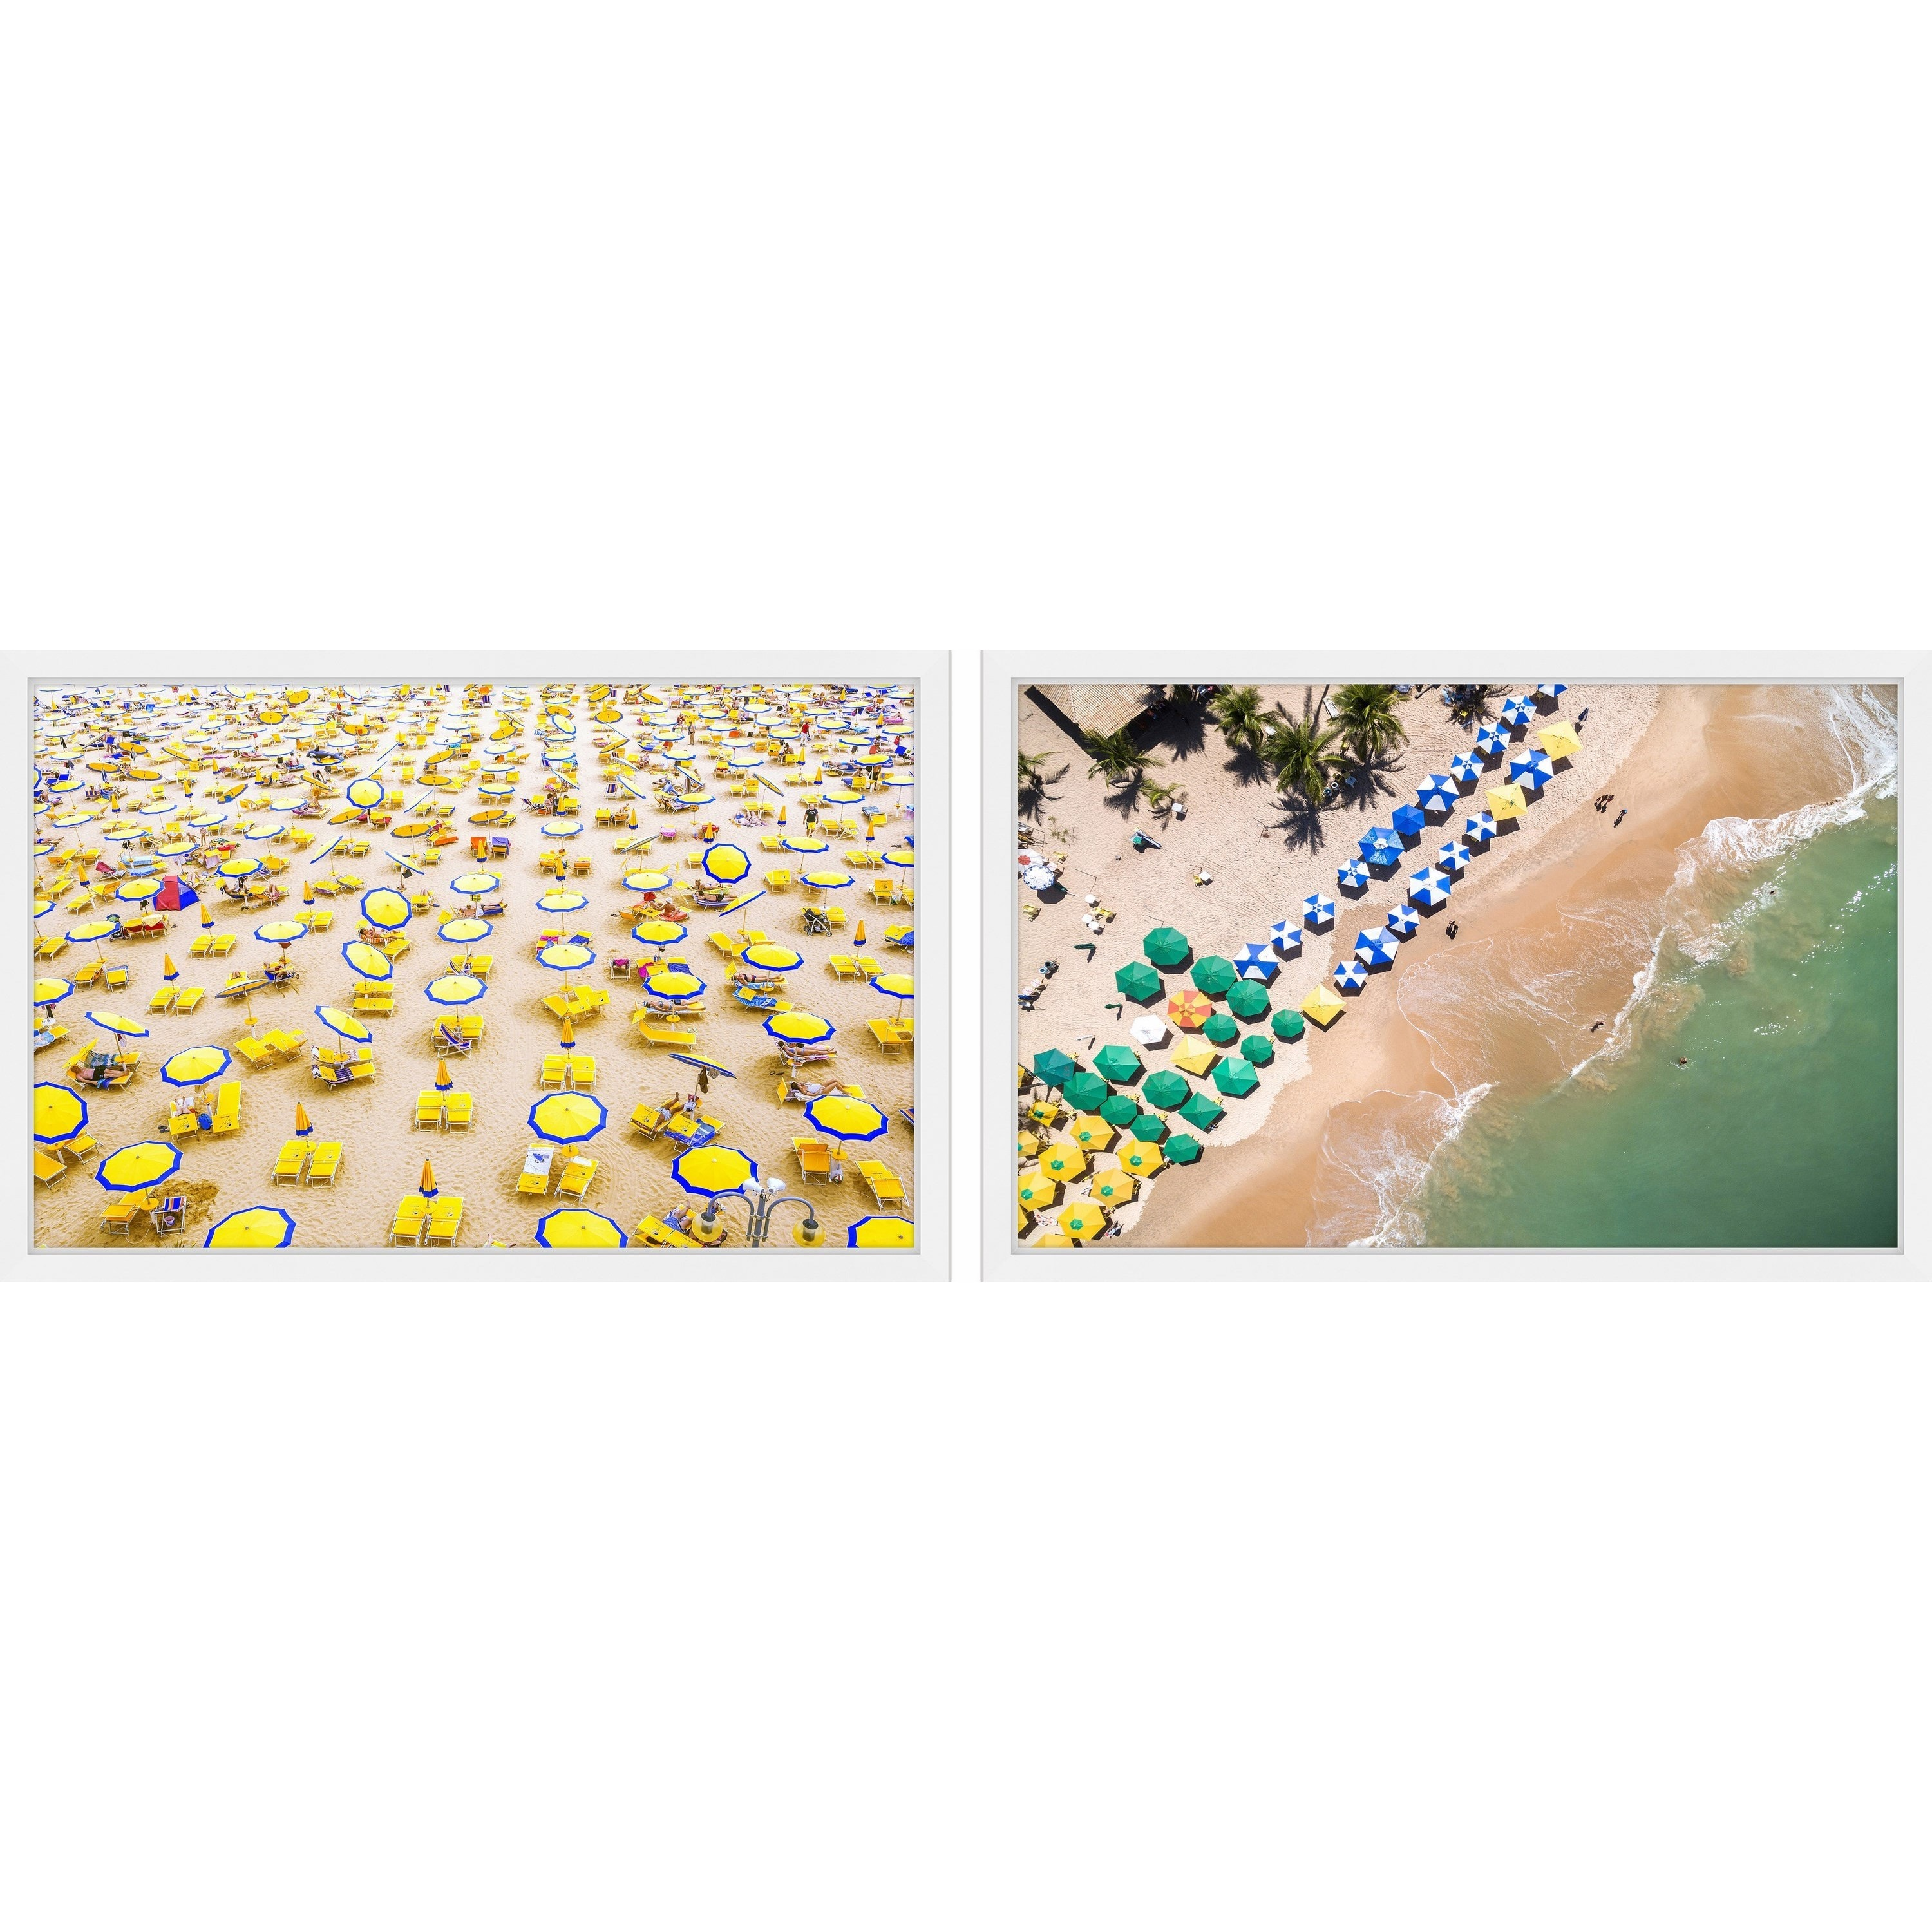 Beach Umbrellas Diptych by Marmont HIll